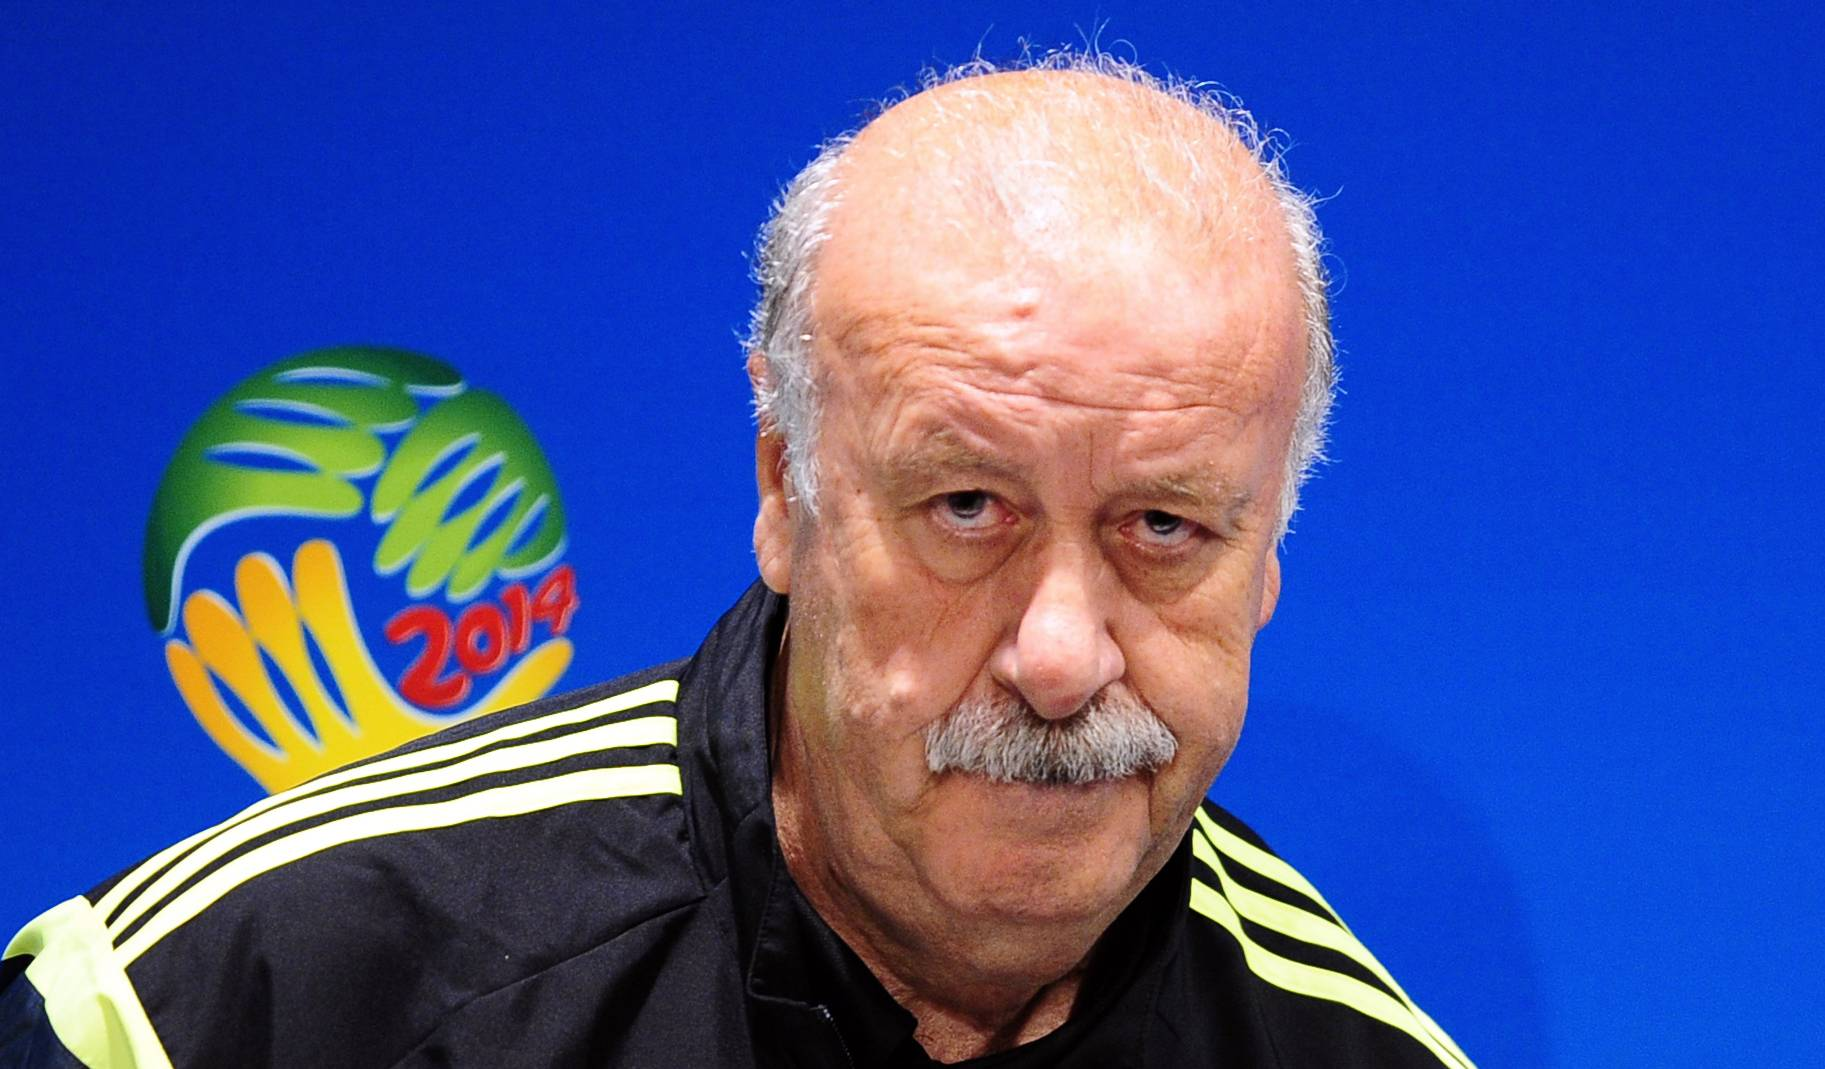 Spain's head coach Vicente del Bosque looks on during an official press conference the day before the group B World Cup soccer match between Spain and Chile at the Maracana stadium in Rio de Janeiro, Brazil, Tuesday, June 17, 2014. Spain will play in group B of the Brazil 2014 World Cup. (AP Photo/Manu Fernandez)